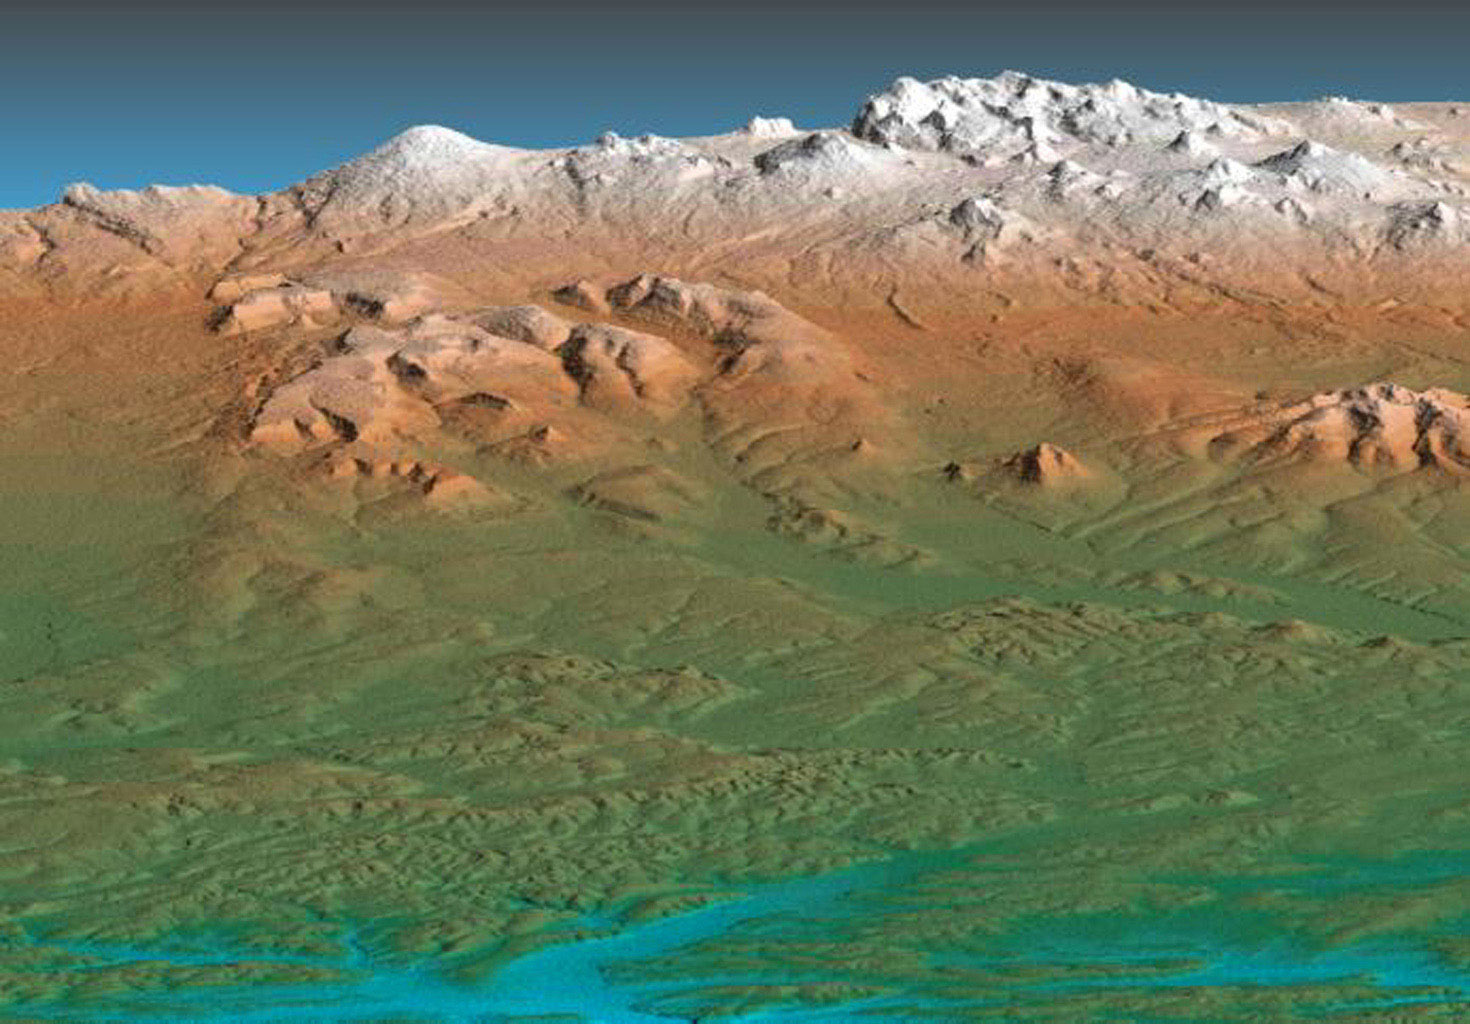 This perspective view acquired by NASA's Shuttle Radar Topography Mission from data collected on February 12, 2000 shows the western side of the volcanically active Kamchatka Peninsula, Russia.